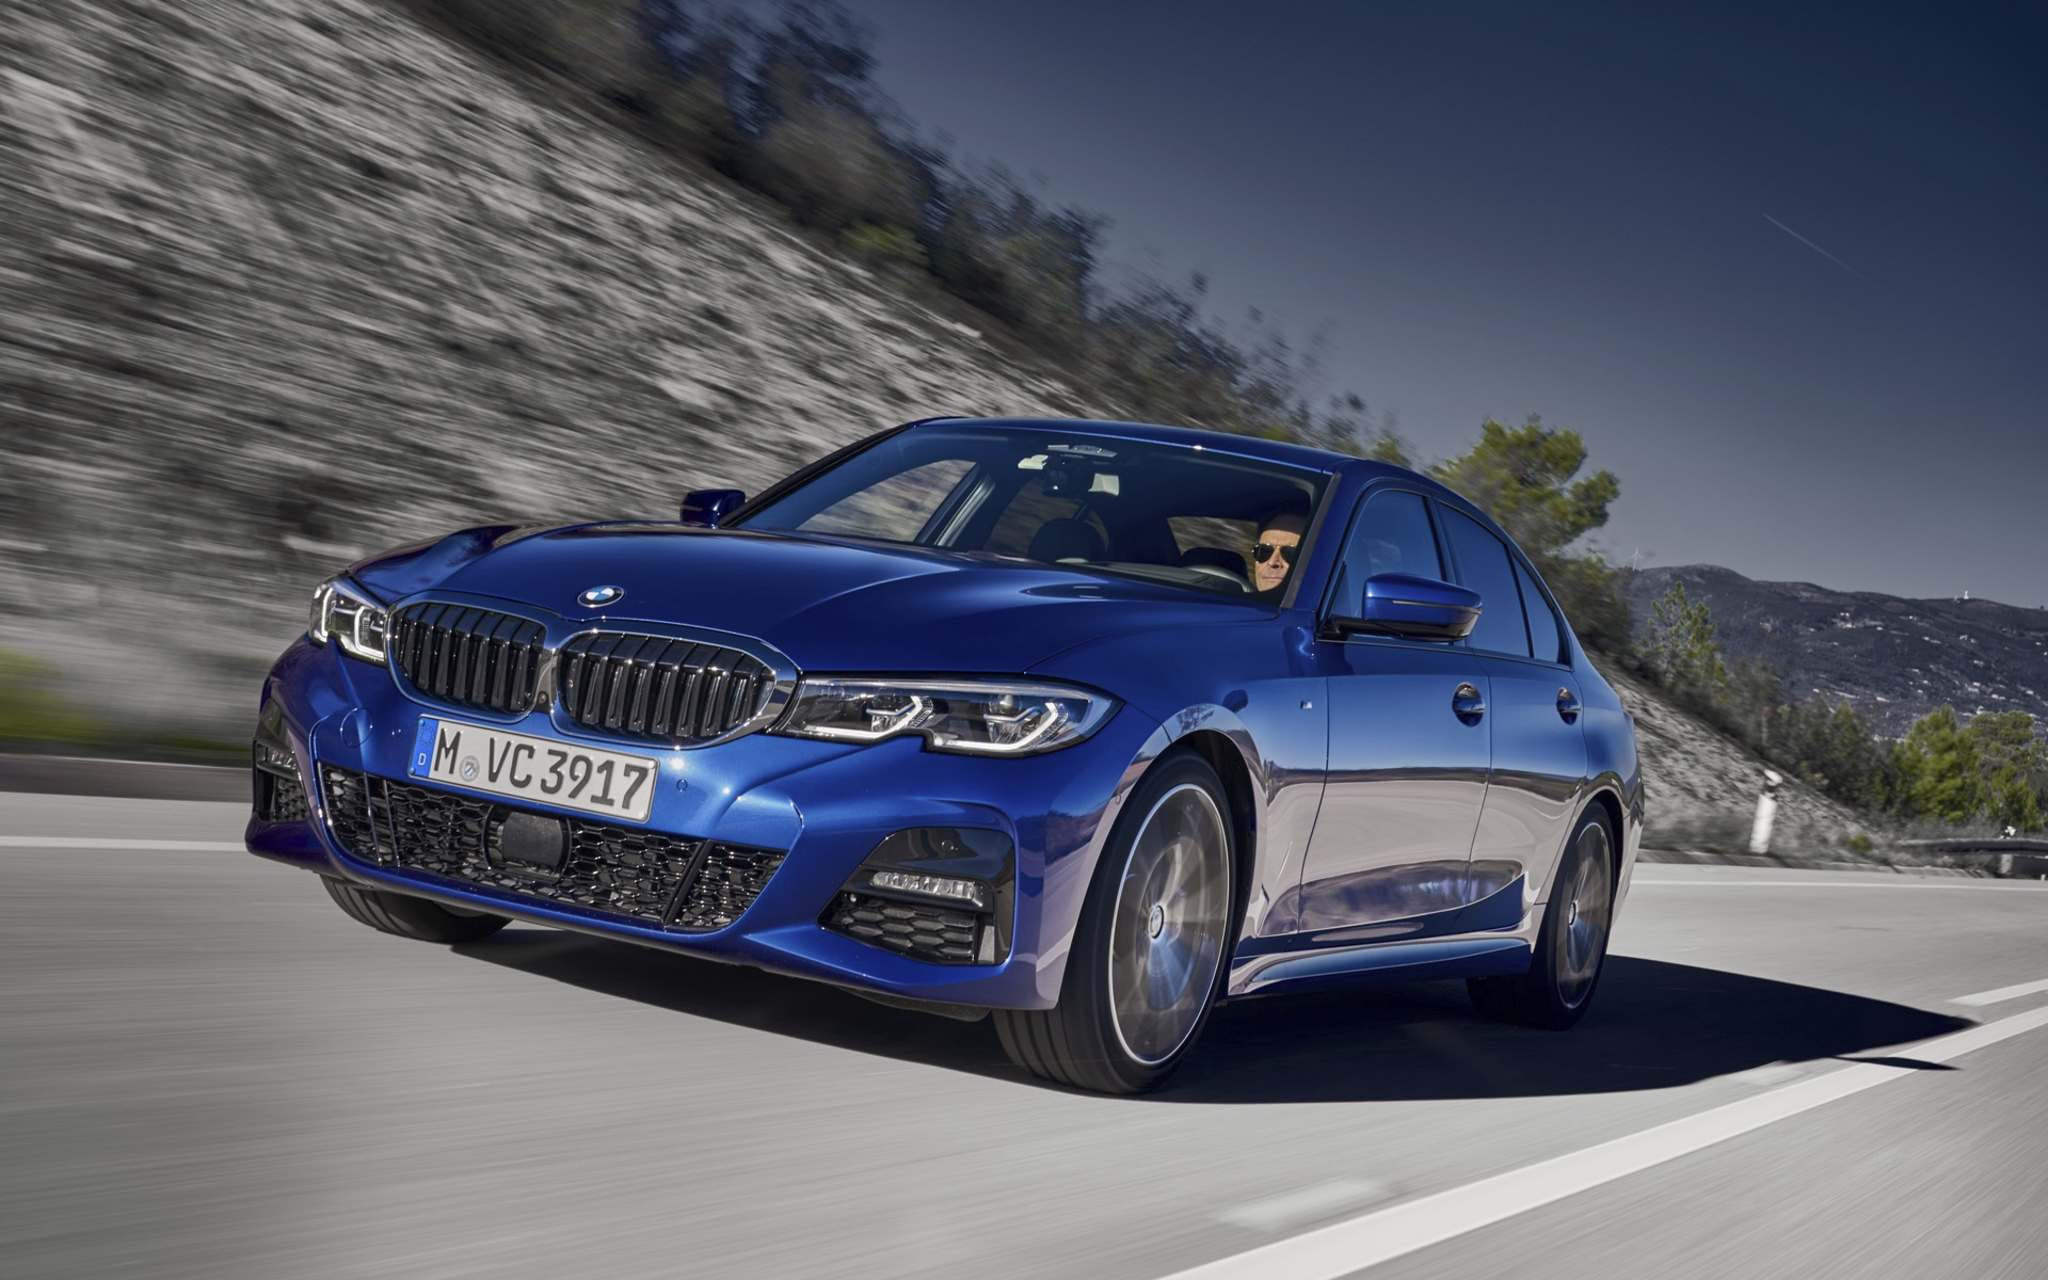 BMWBMW has produced more than 15.5 million units since the launch of the 3 Series in 1975, making it the manufacturer's most popular series ever.